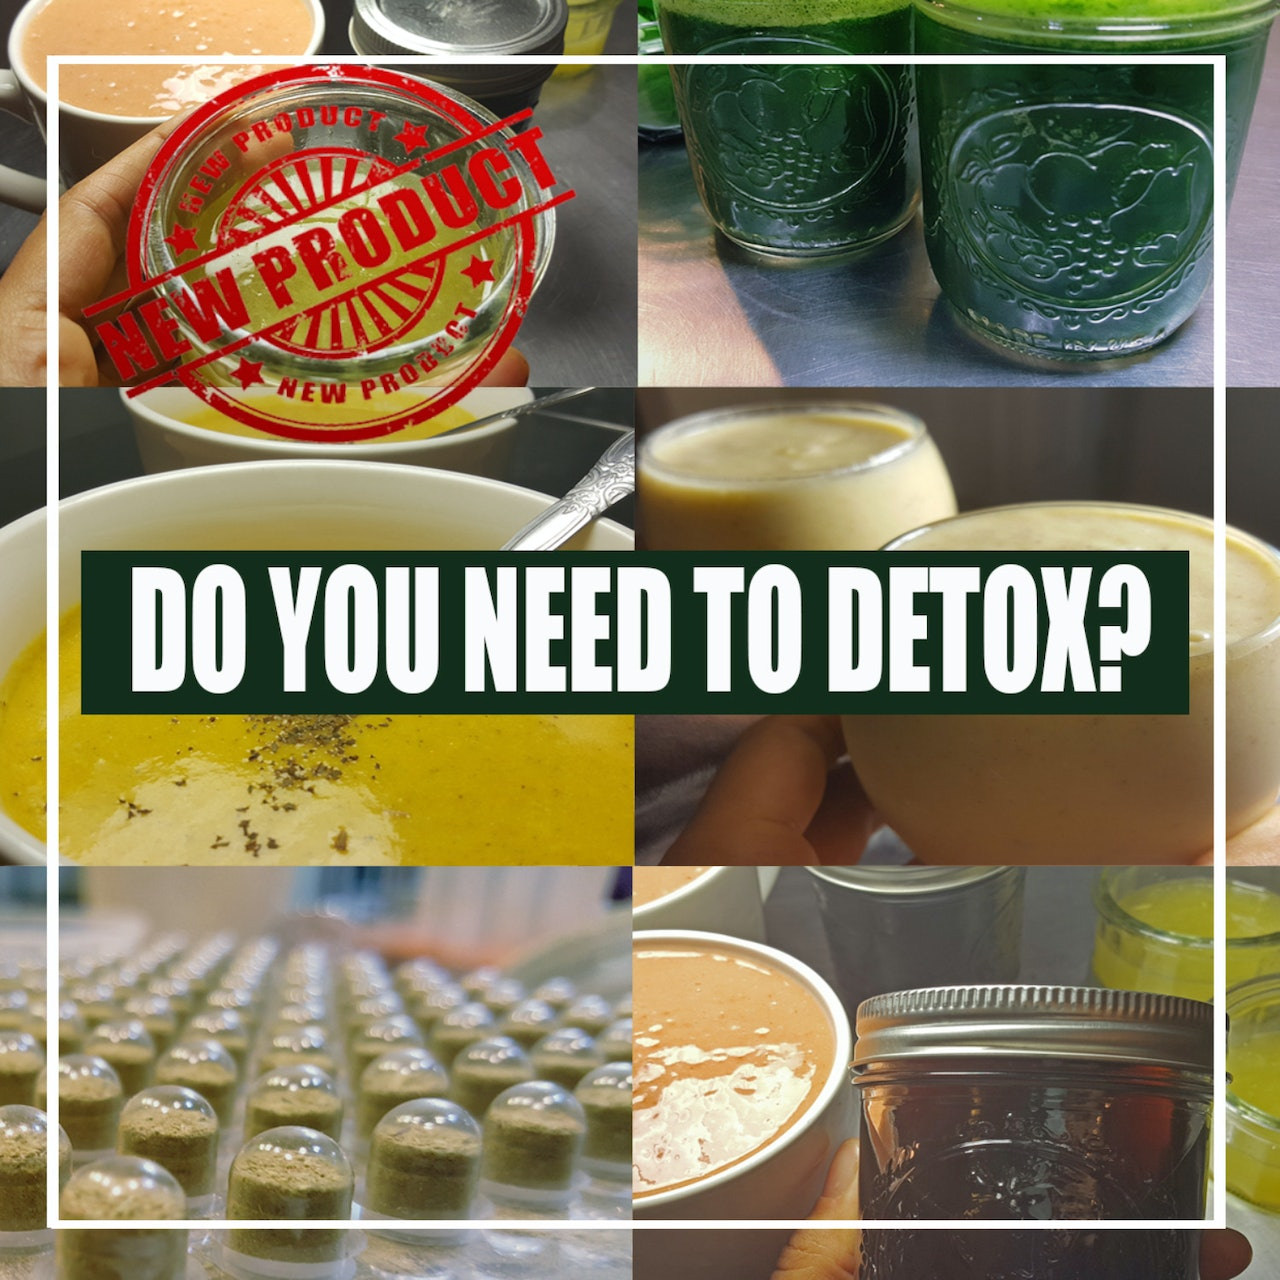 BEYOND VEGAN: DO YOU WANT TO DETOX WITH US?